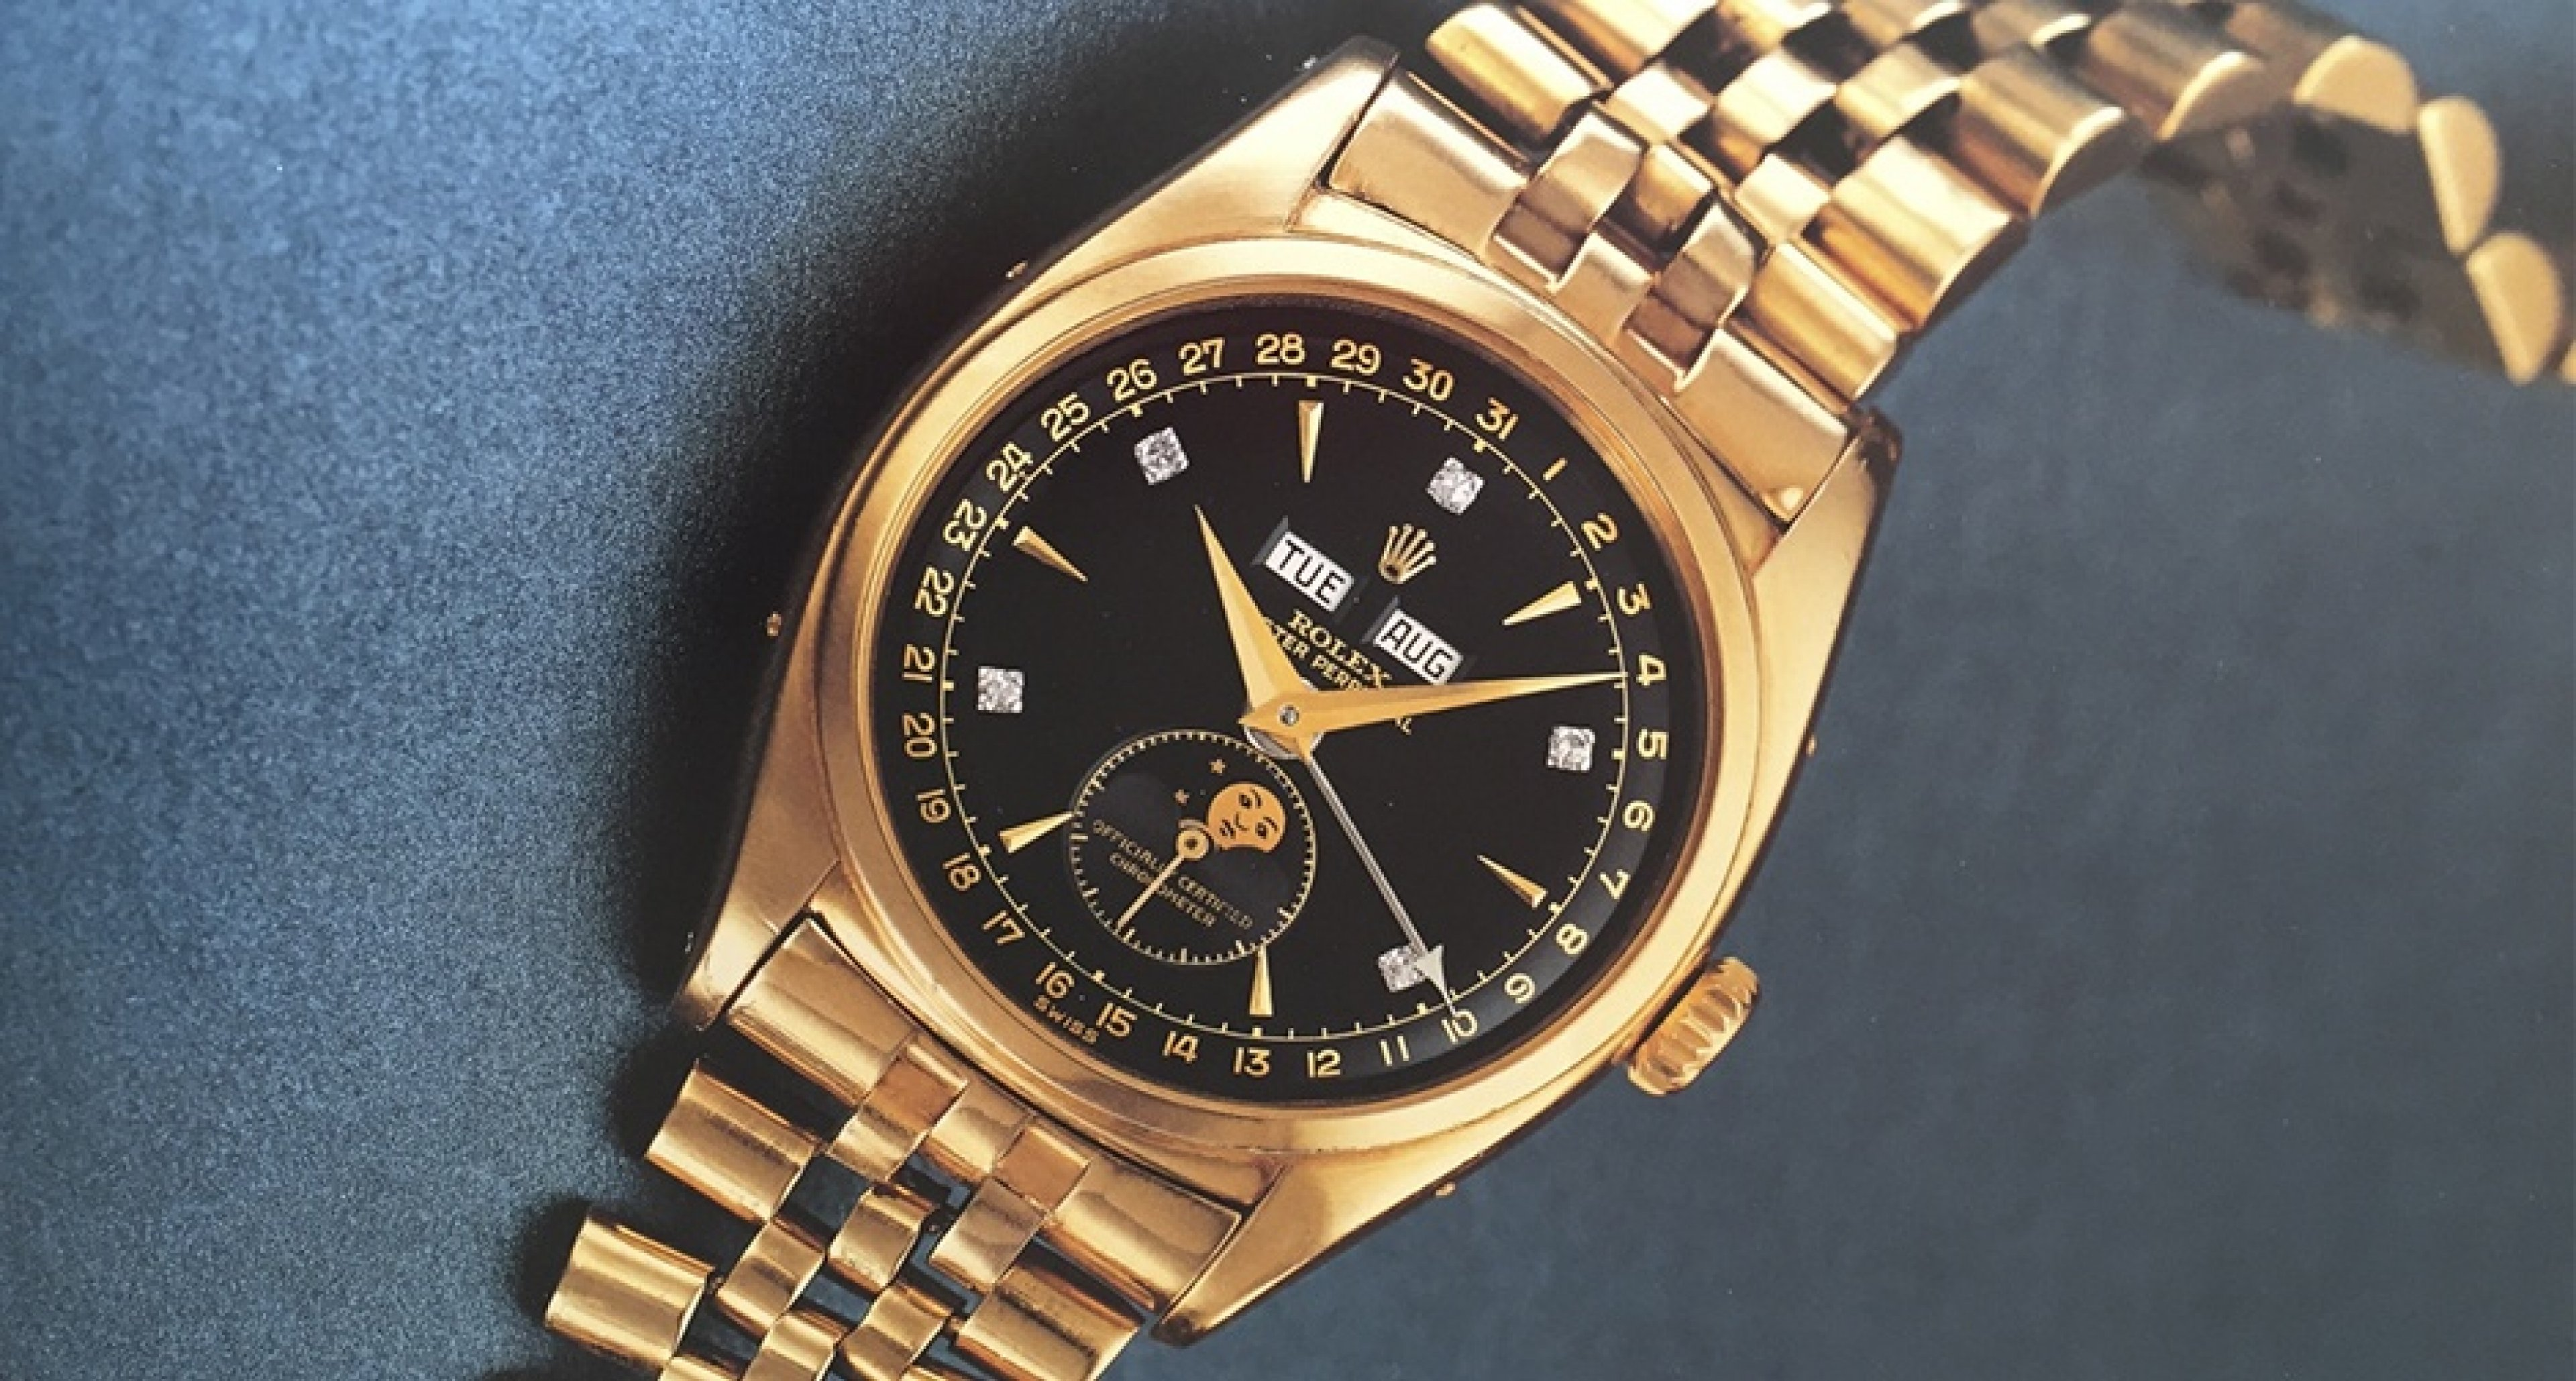 phillips to auction off vietnamese emperor s rolex for over 1 5 million usd classic driver. Black Bedroom Furniture Sets. Home Design Ideas